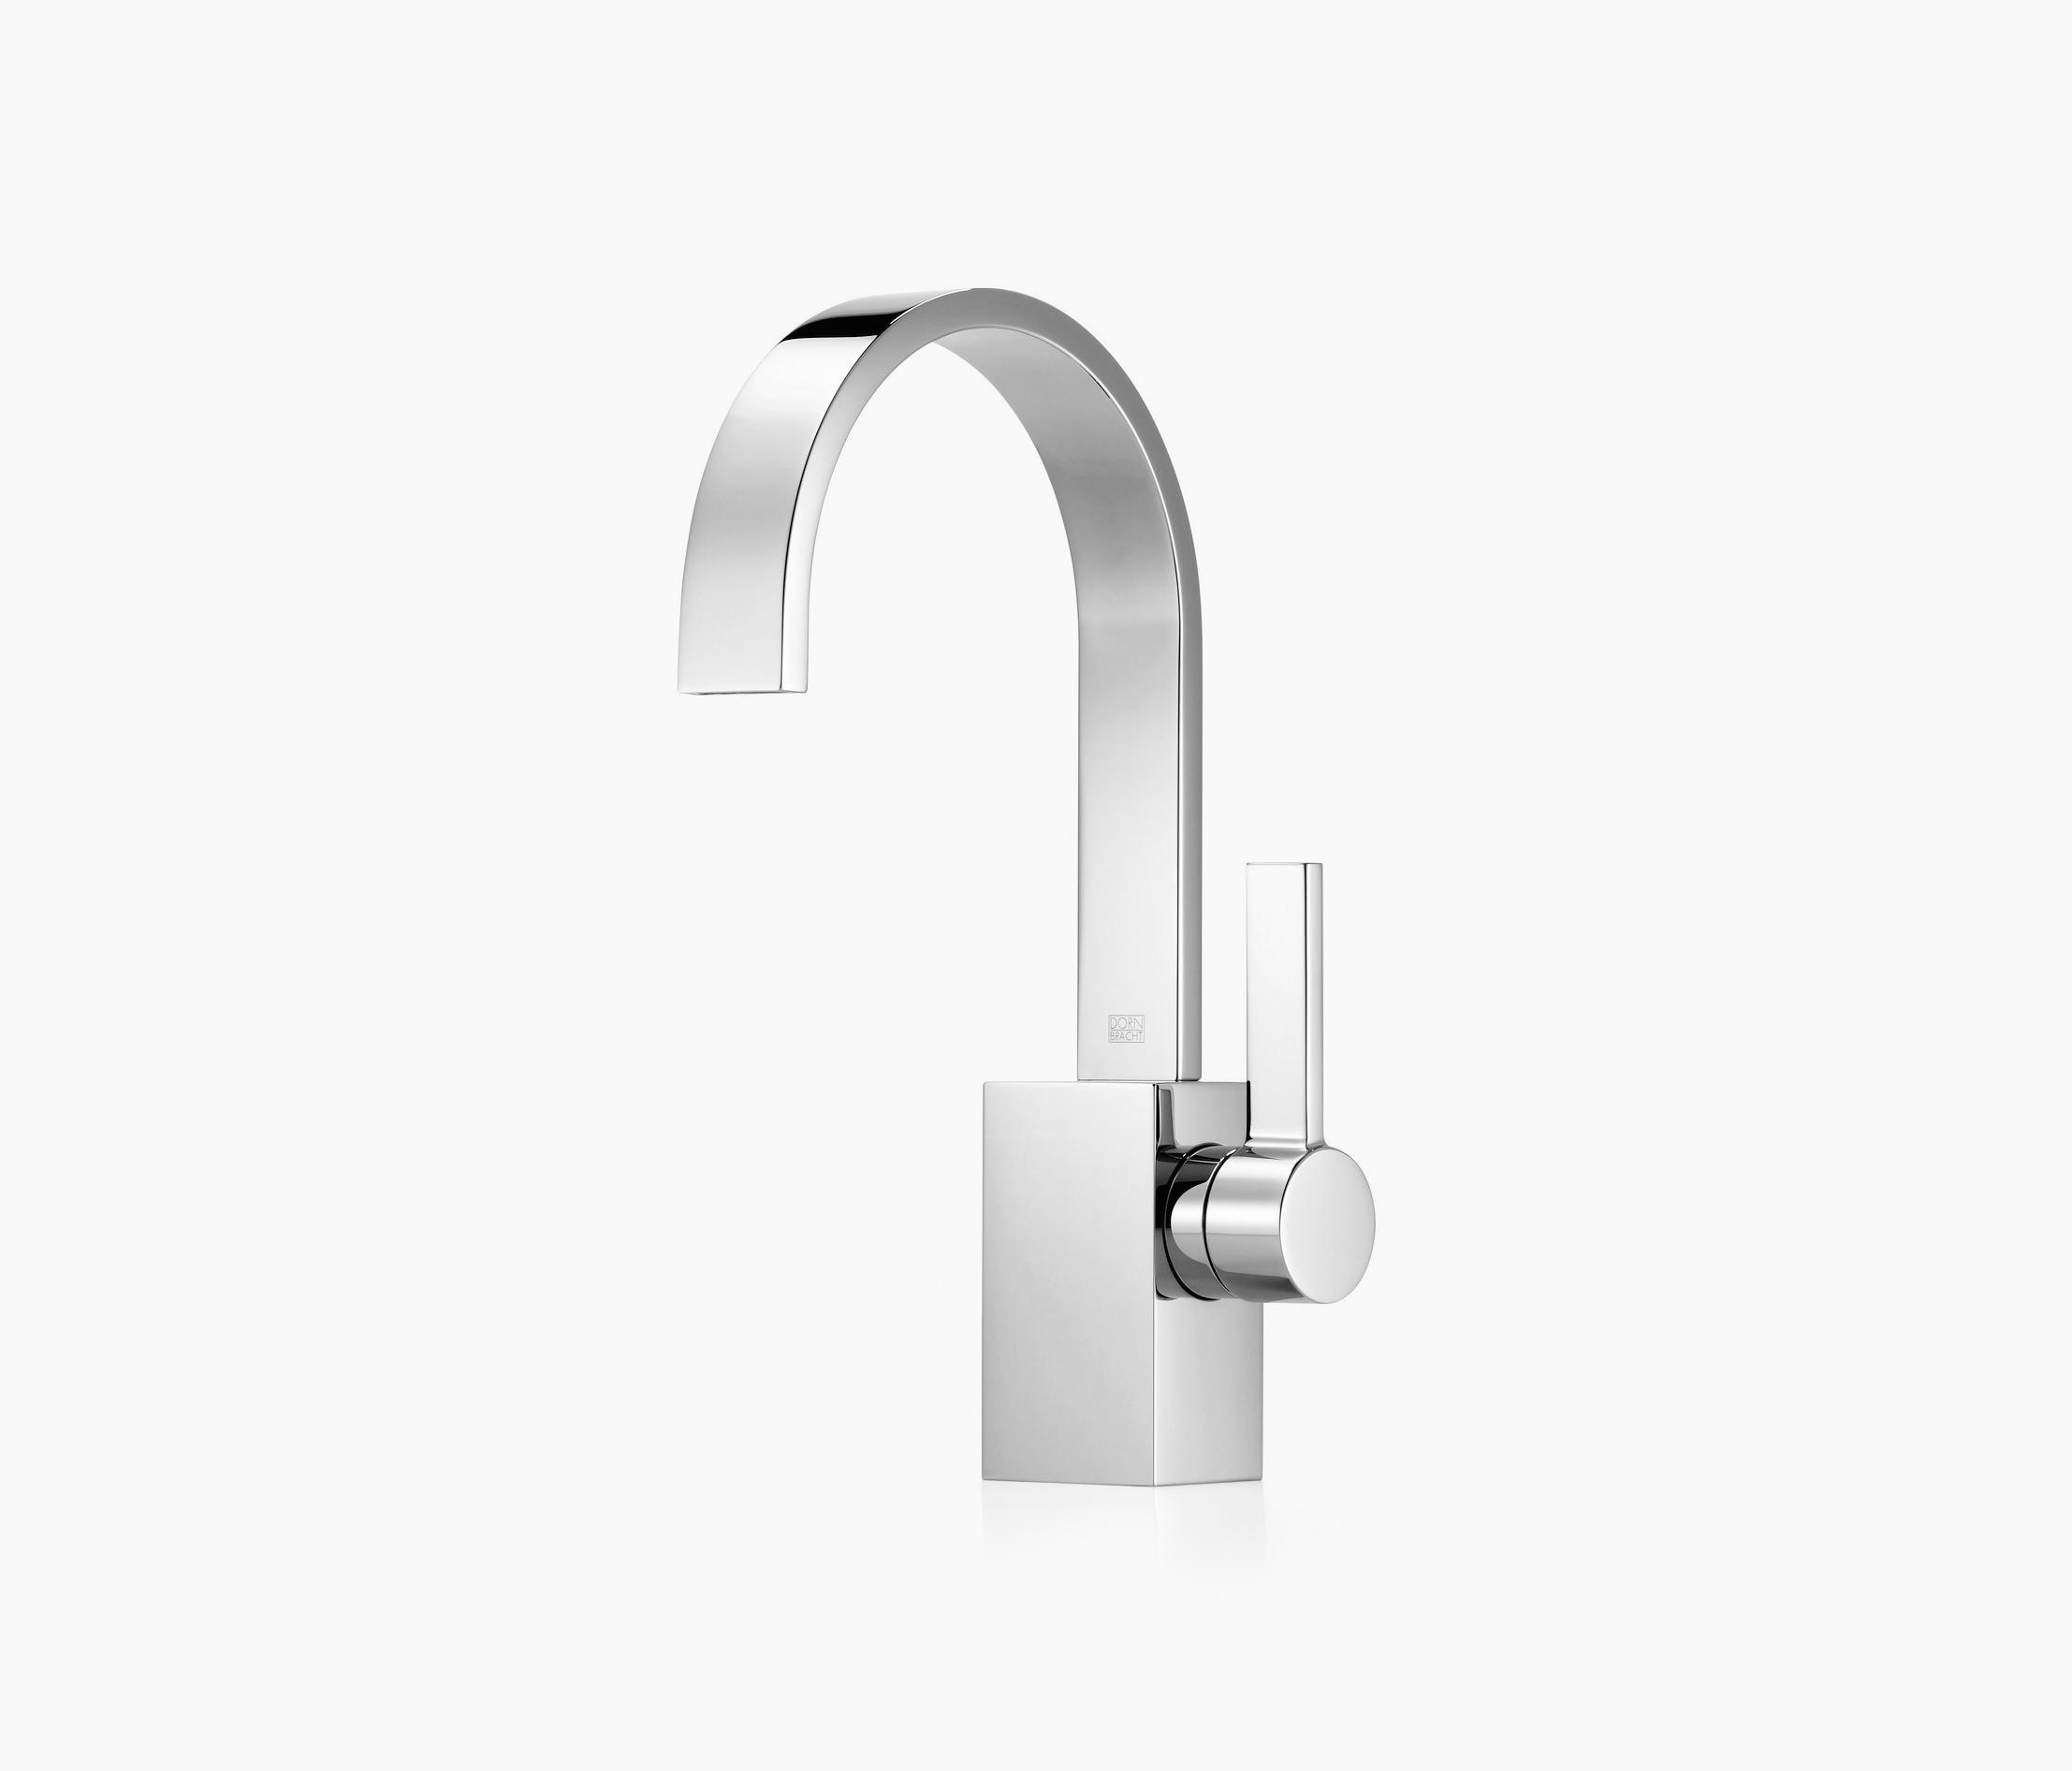 Dornbracht Mem Mem Single Lever Basin Mixer Wash Basin Taps From Dornbracht